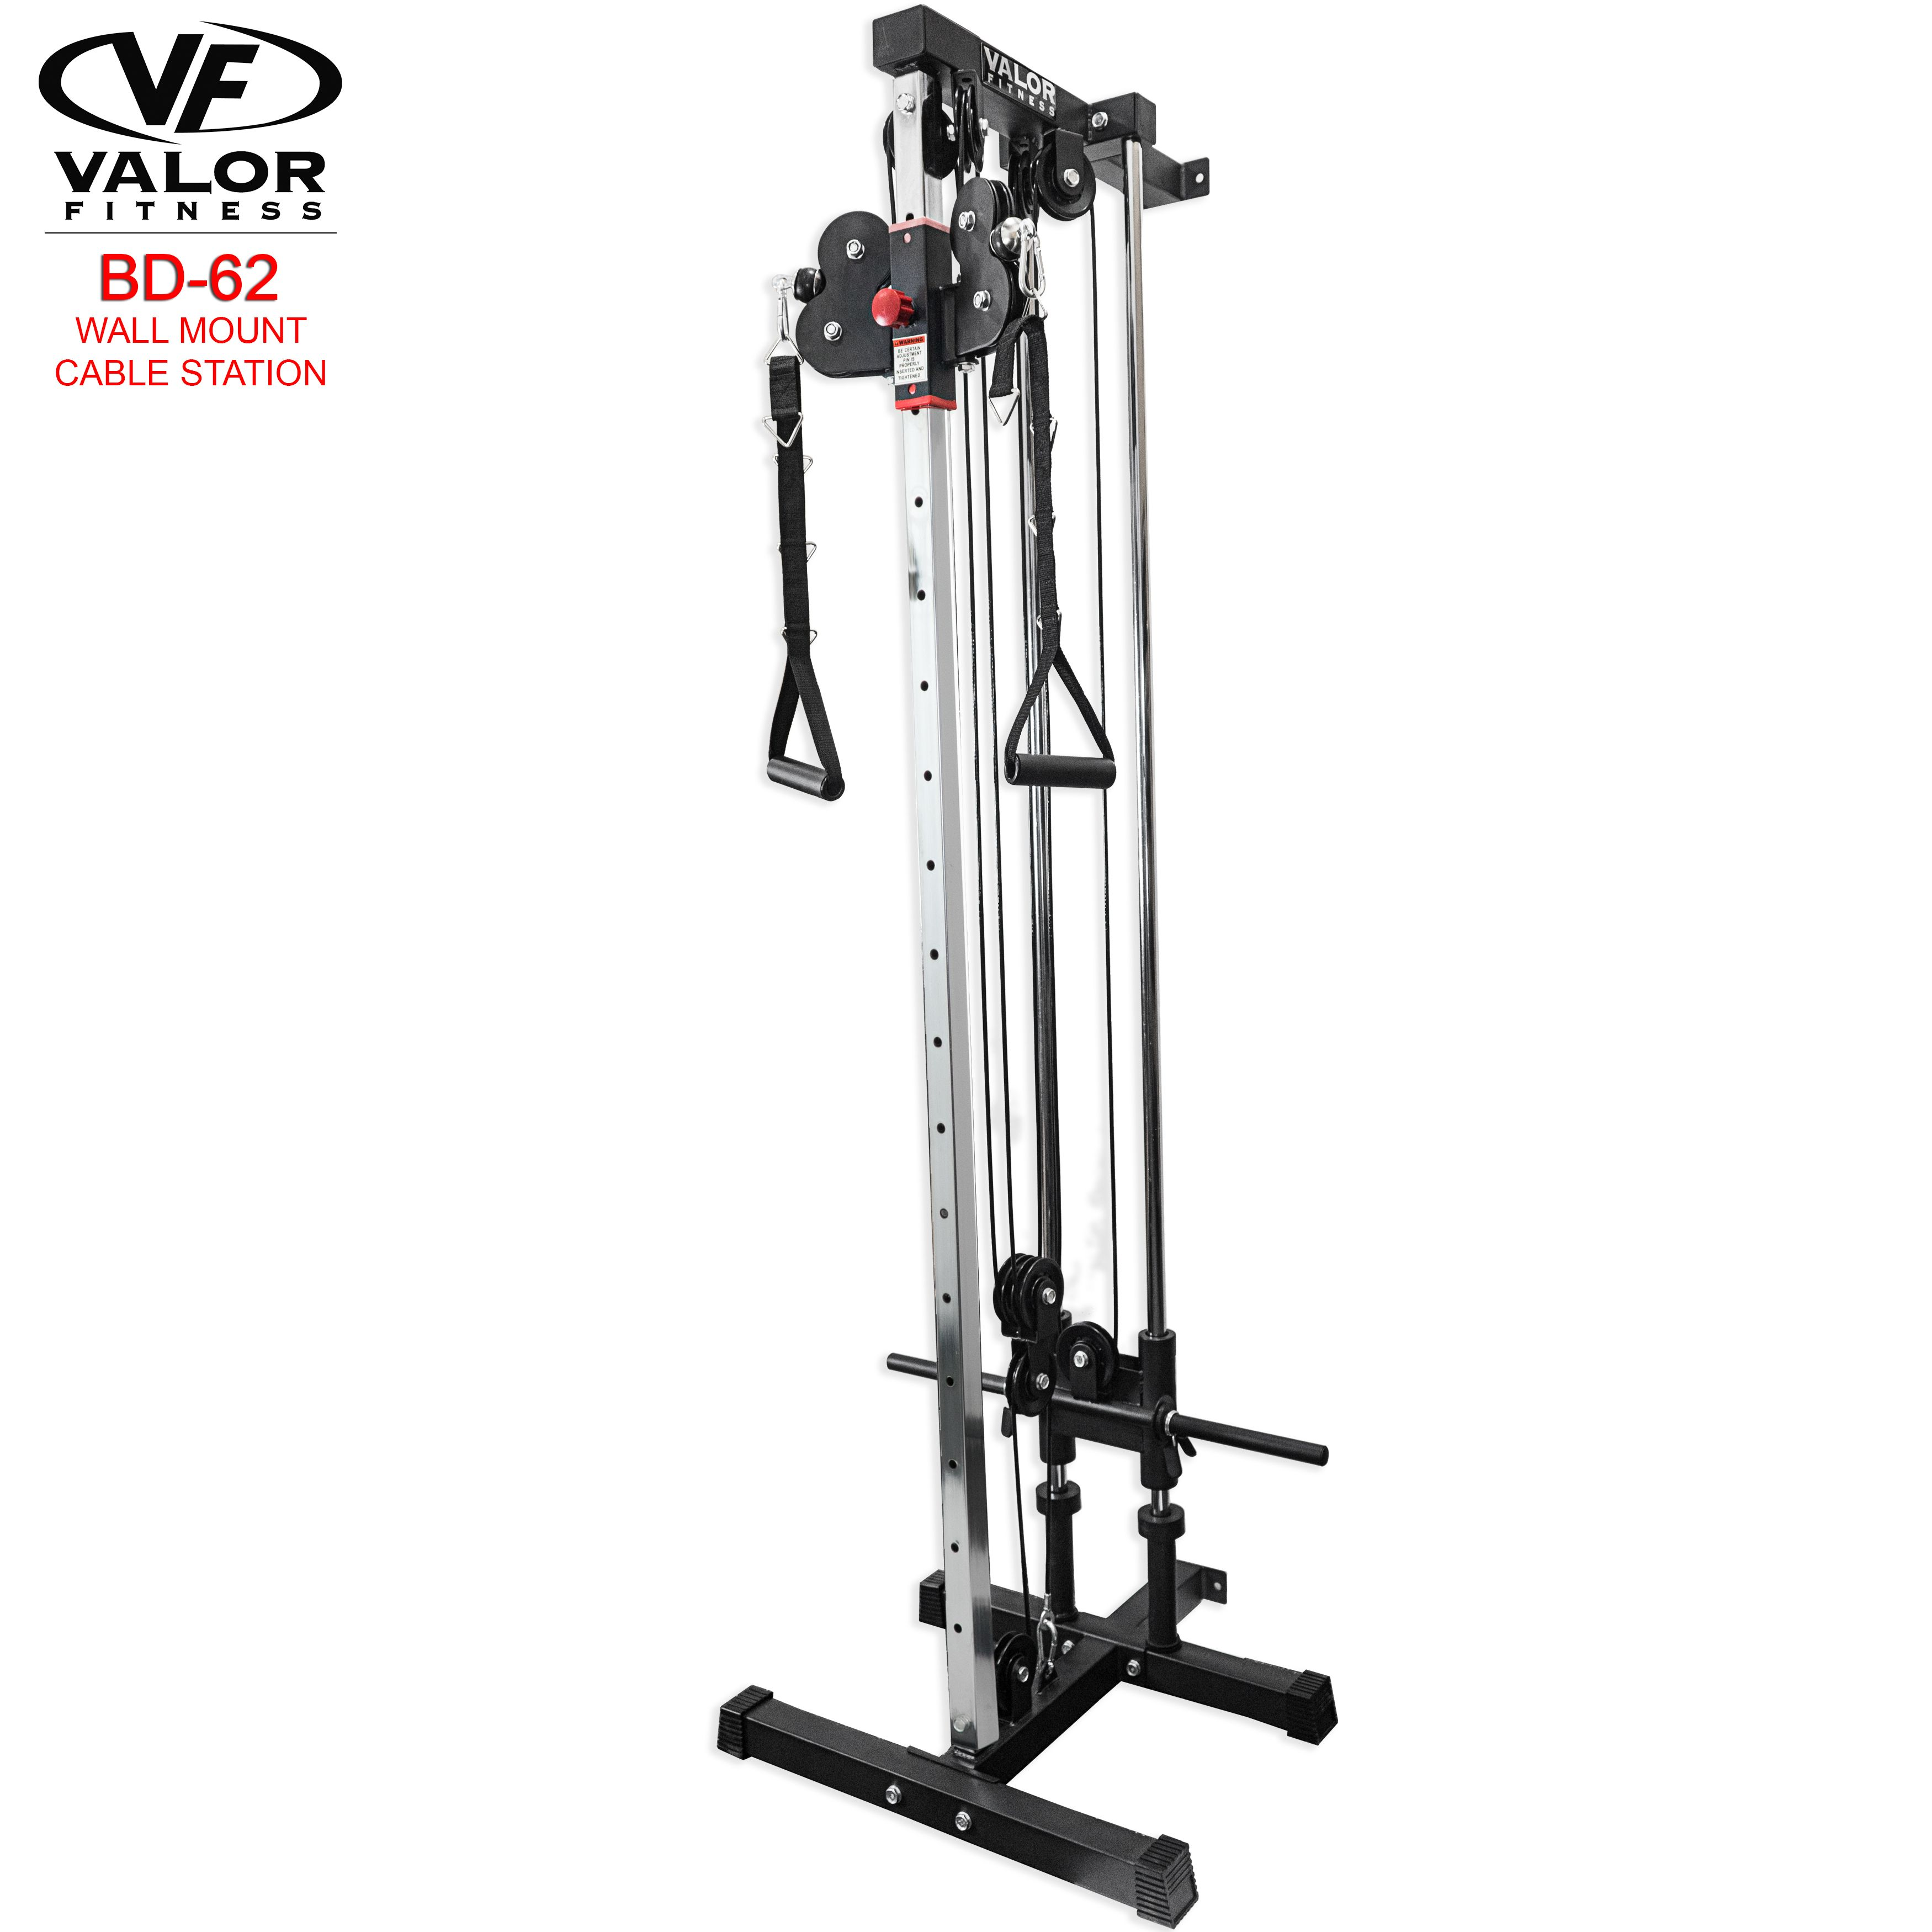 Bd62 wall mount cable station home gym wall mount station